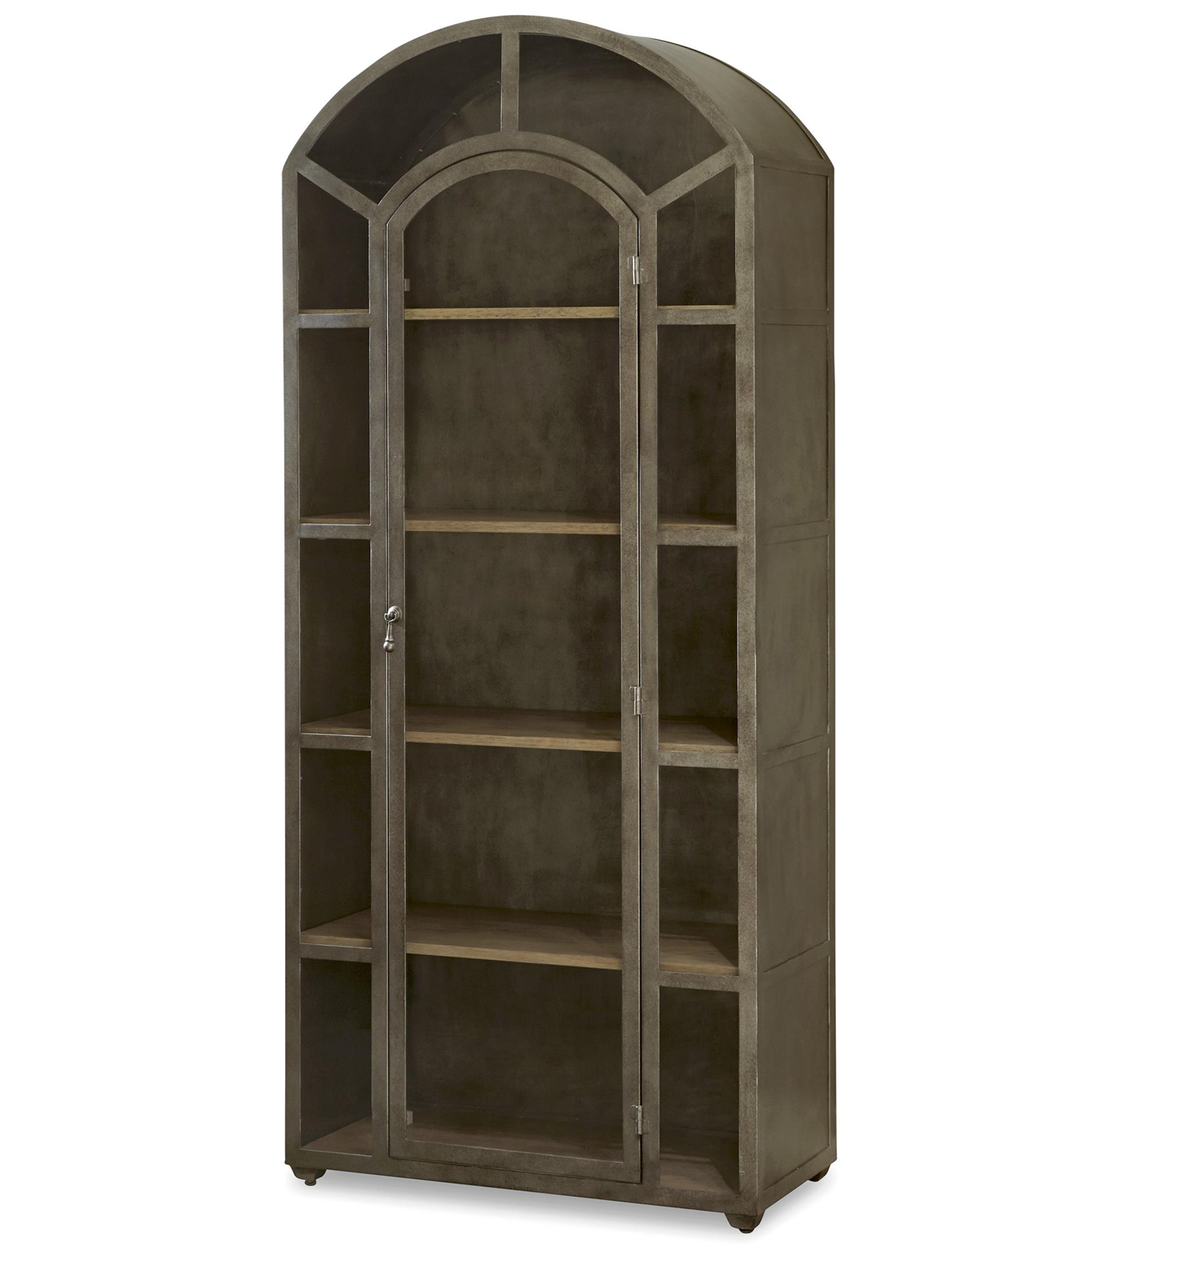 New Metal and Glass Display Cabinet